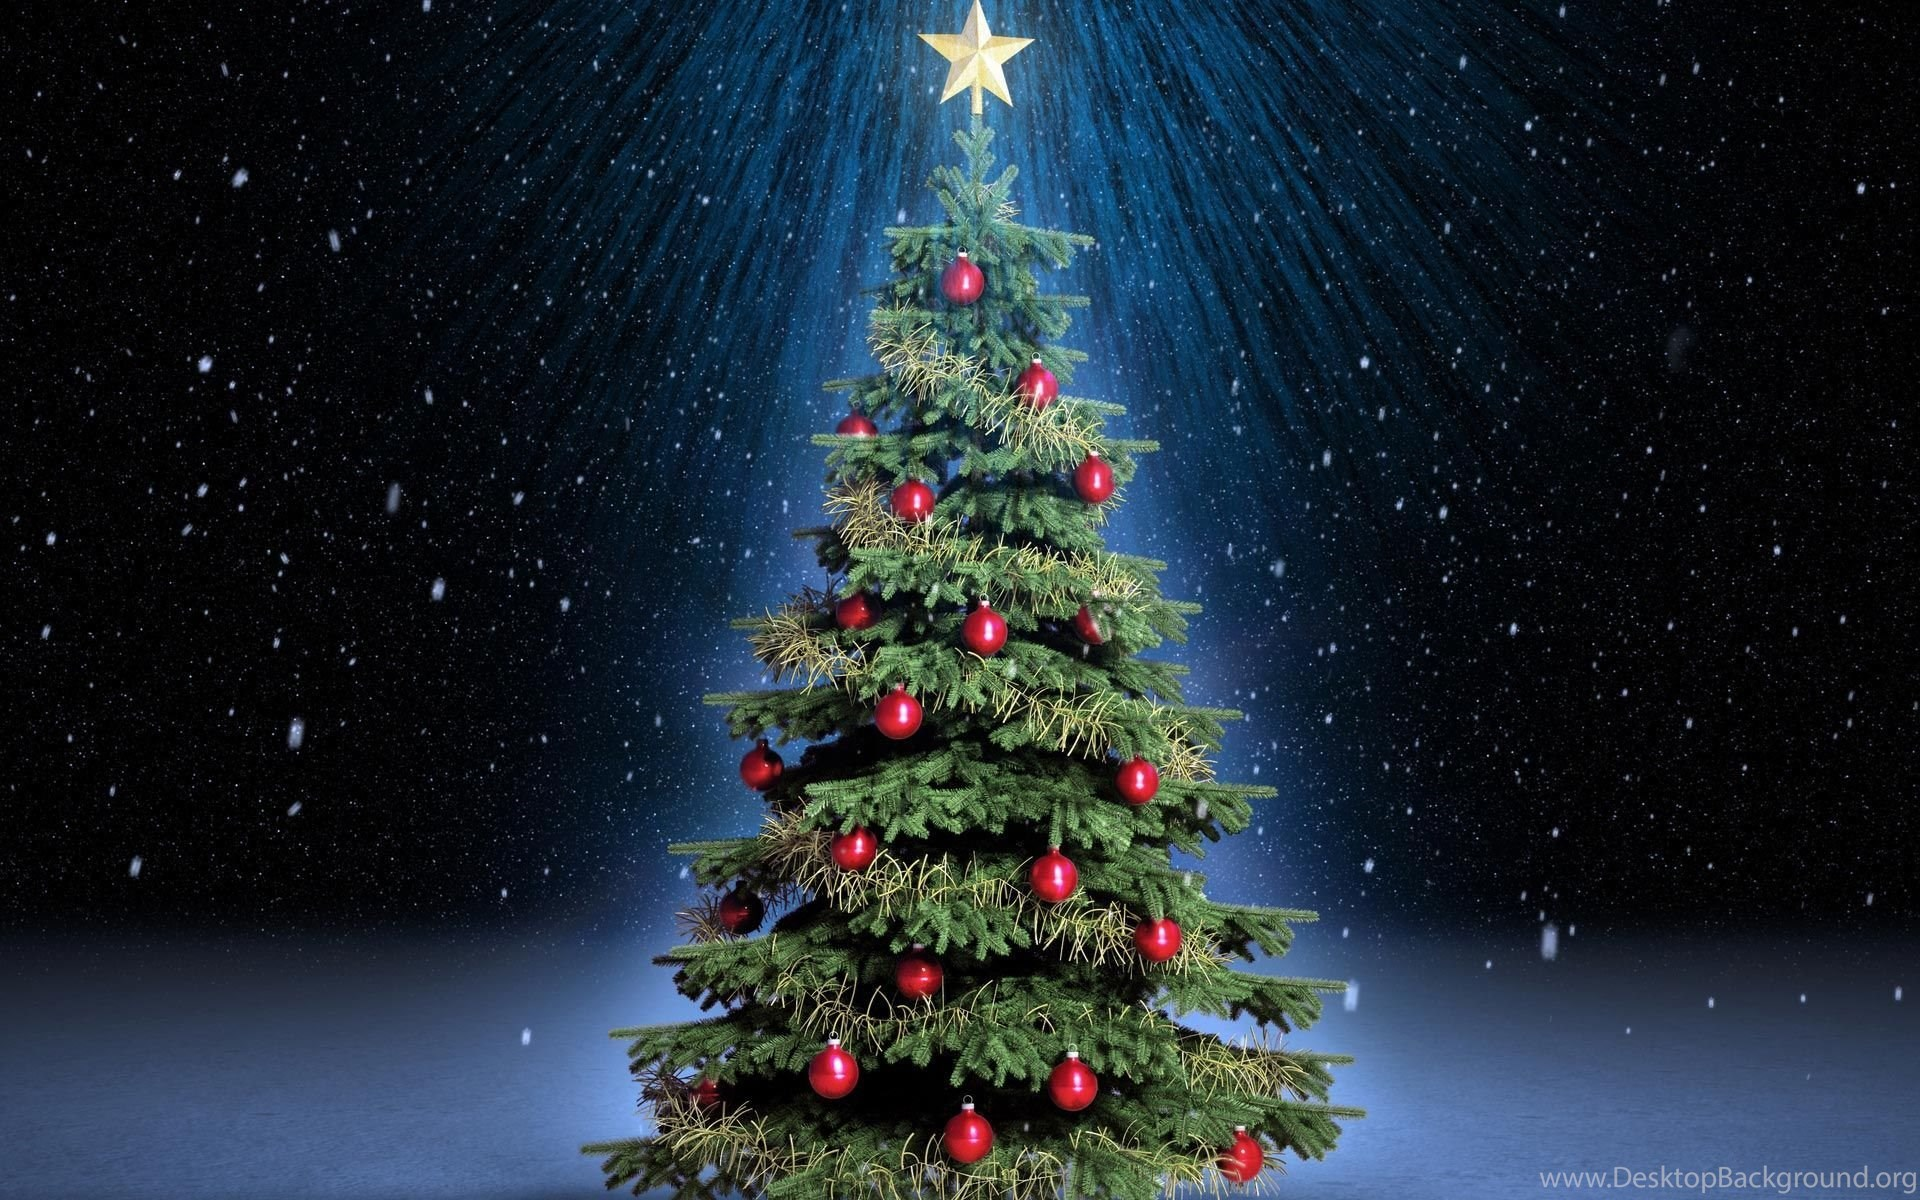 Download Free Download Christmas Wallpapers And: Free Christmas Tree Wallpapers Downloads Desktop Background